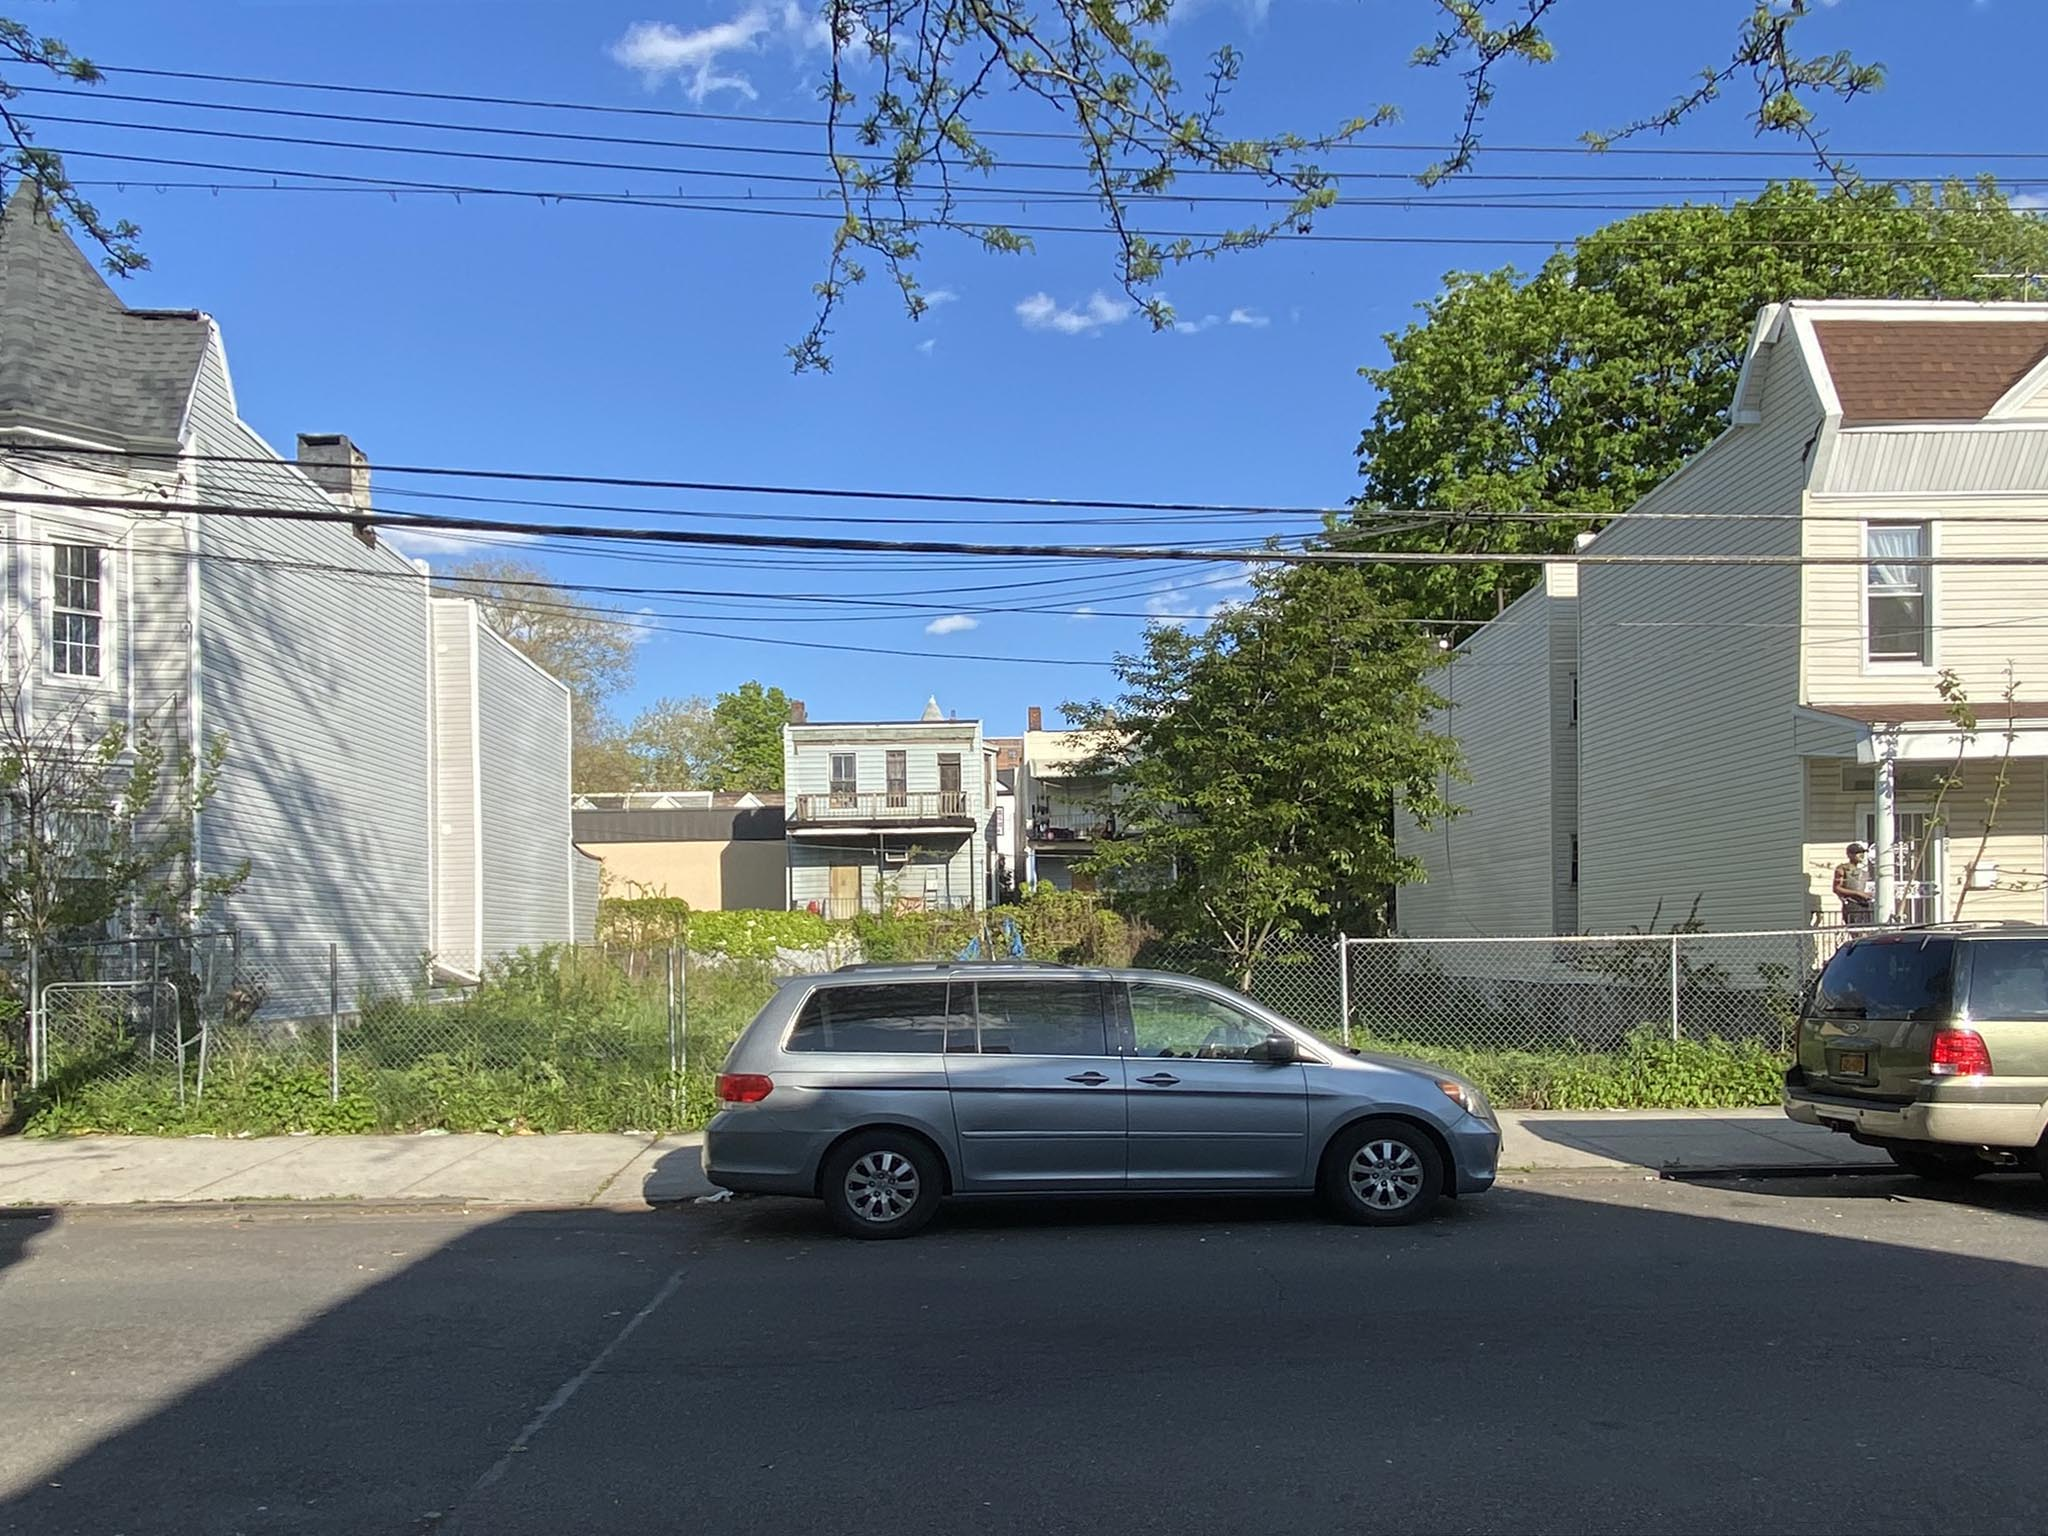 LichtensteinRE.com Helps Provide Desperately Needed New York City Affordable Housing with Sale of Development Site